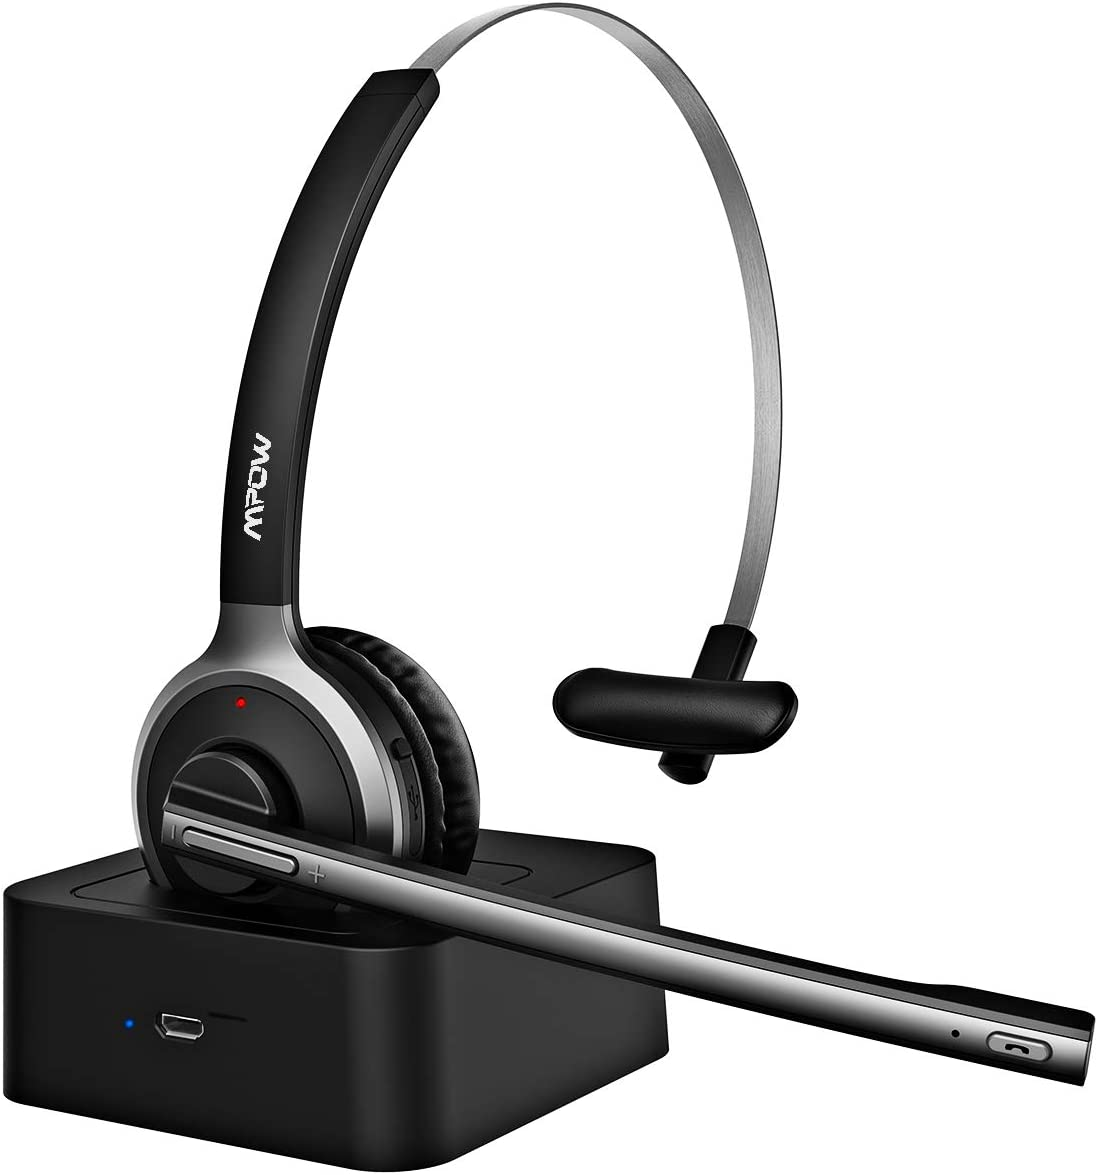 Mpow M5 Pro Bluetooth Headset, Advanced Noise Cancelling Microphone, Strong BT Signal, Comfort-fit Truck Driver Headset with Charging Base, Hands-Free Wireless Headphones for Skype Call Center Office